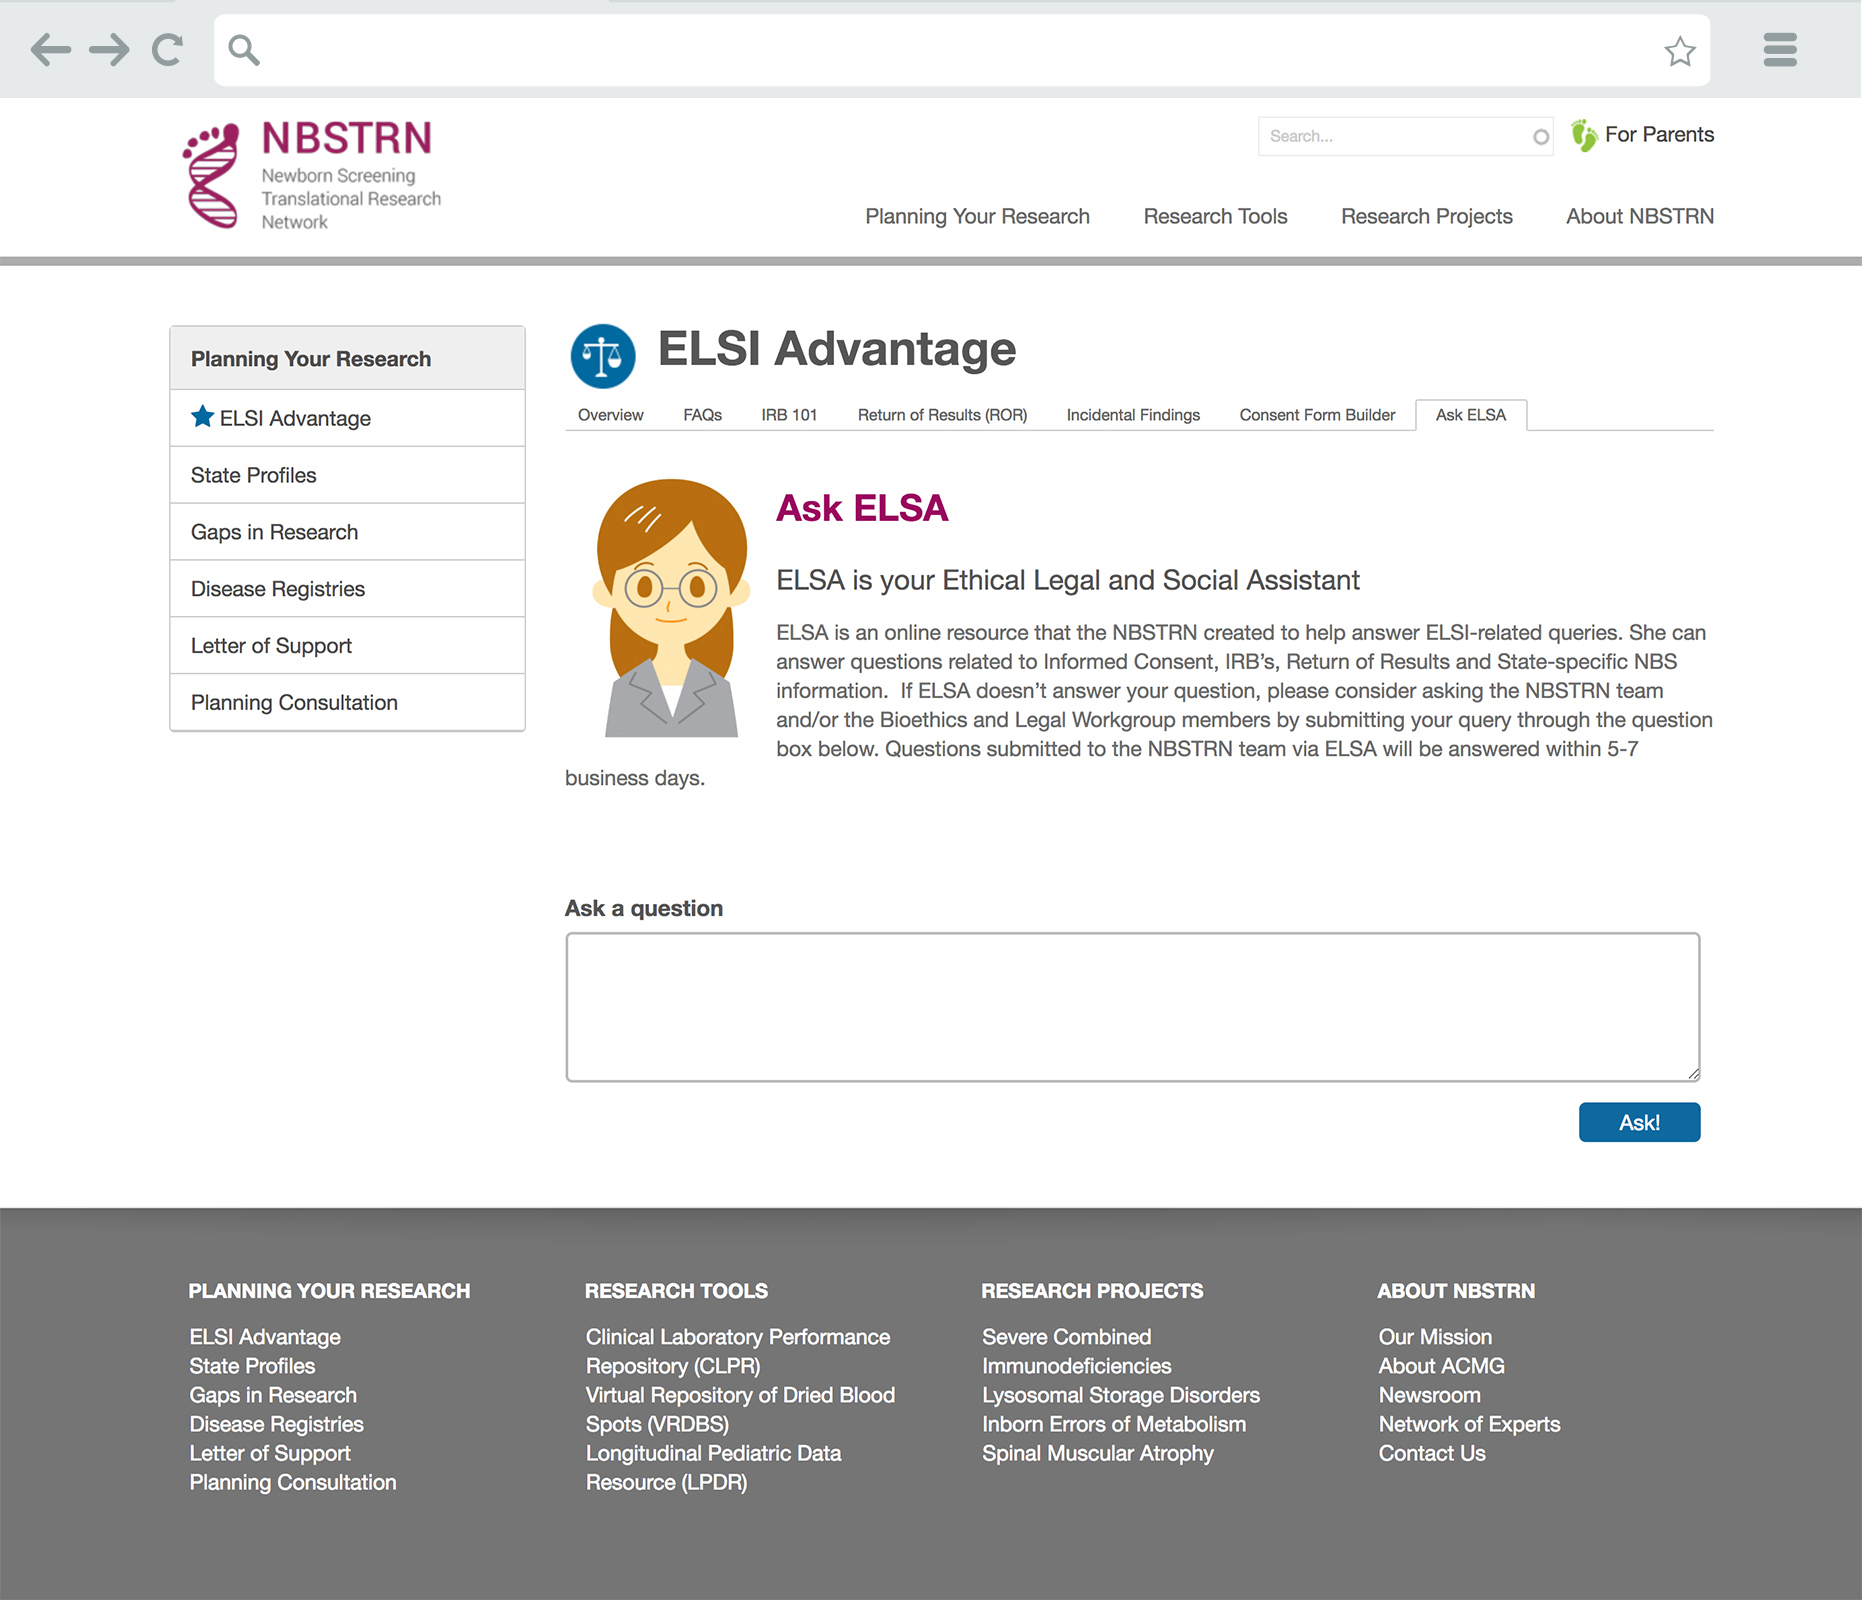 NBSTRN Research Planning ELSI Advantage Page for Ask ELSA